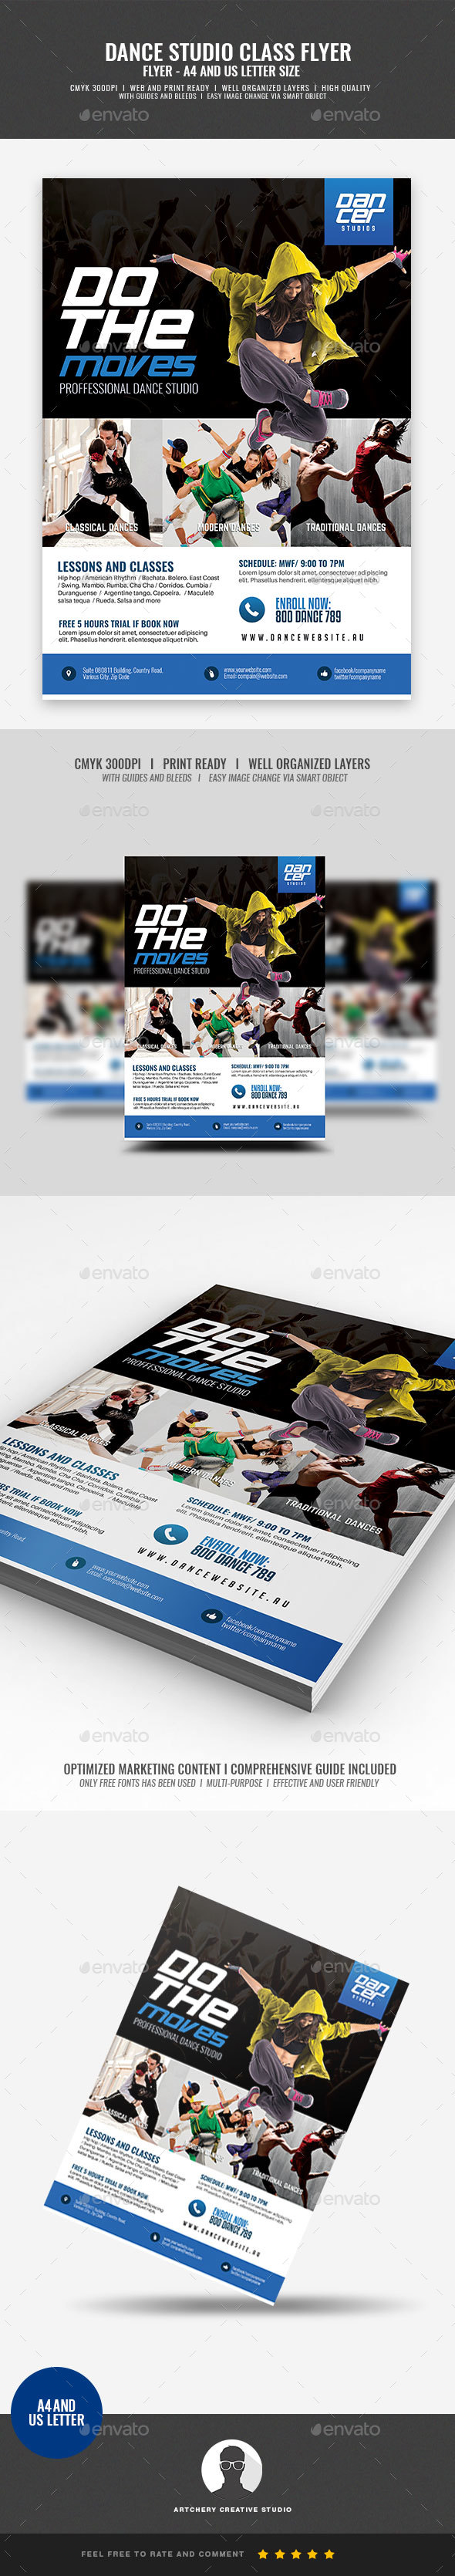 Dance Class and Tutorial Lessons Flyer - Corporate Flyers